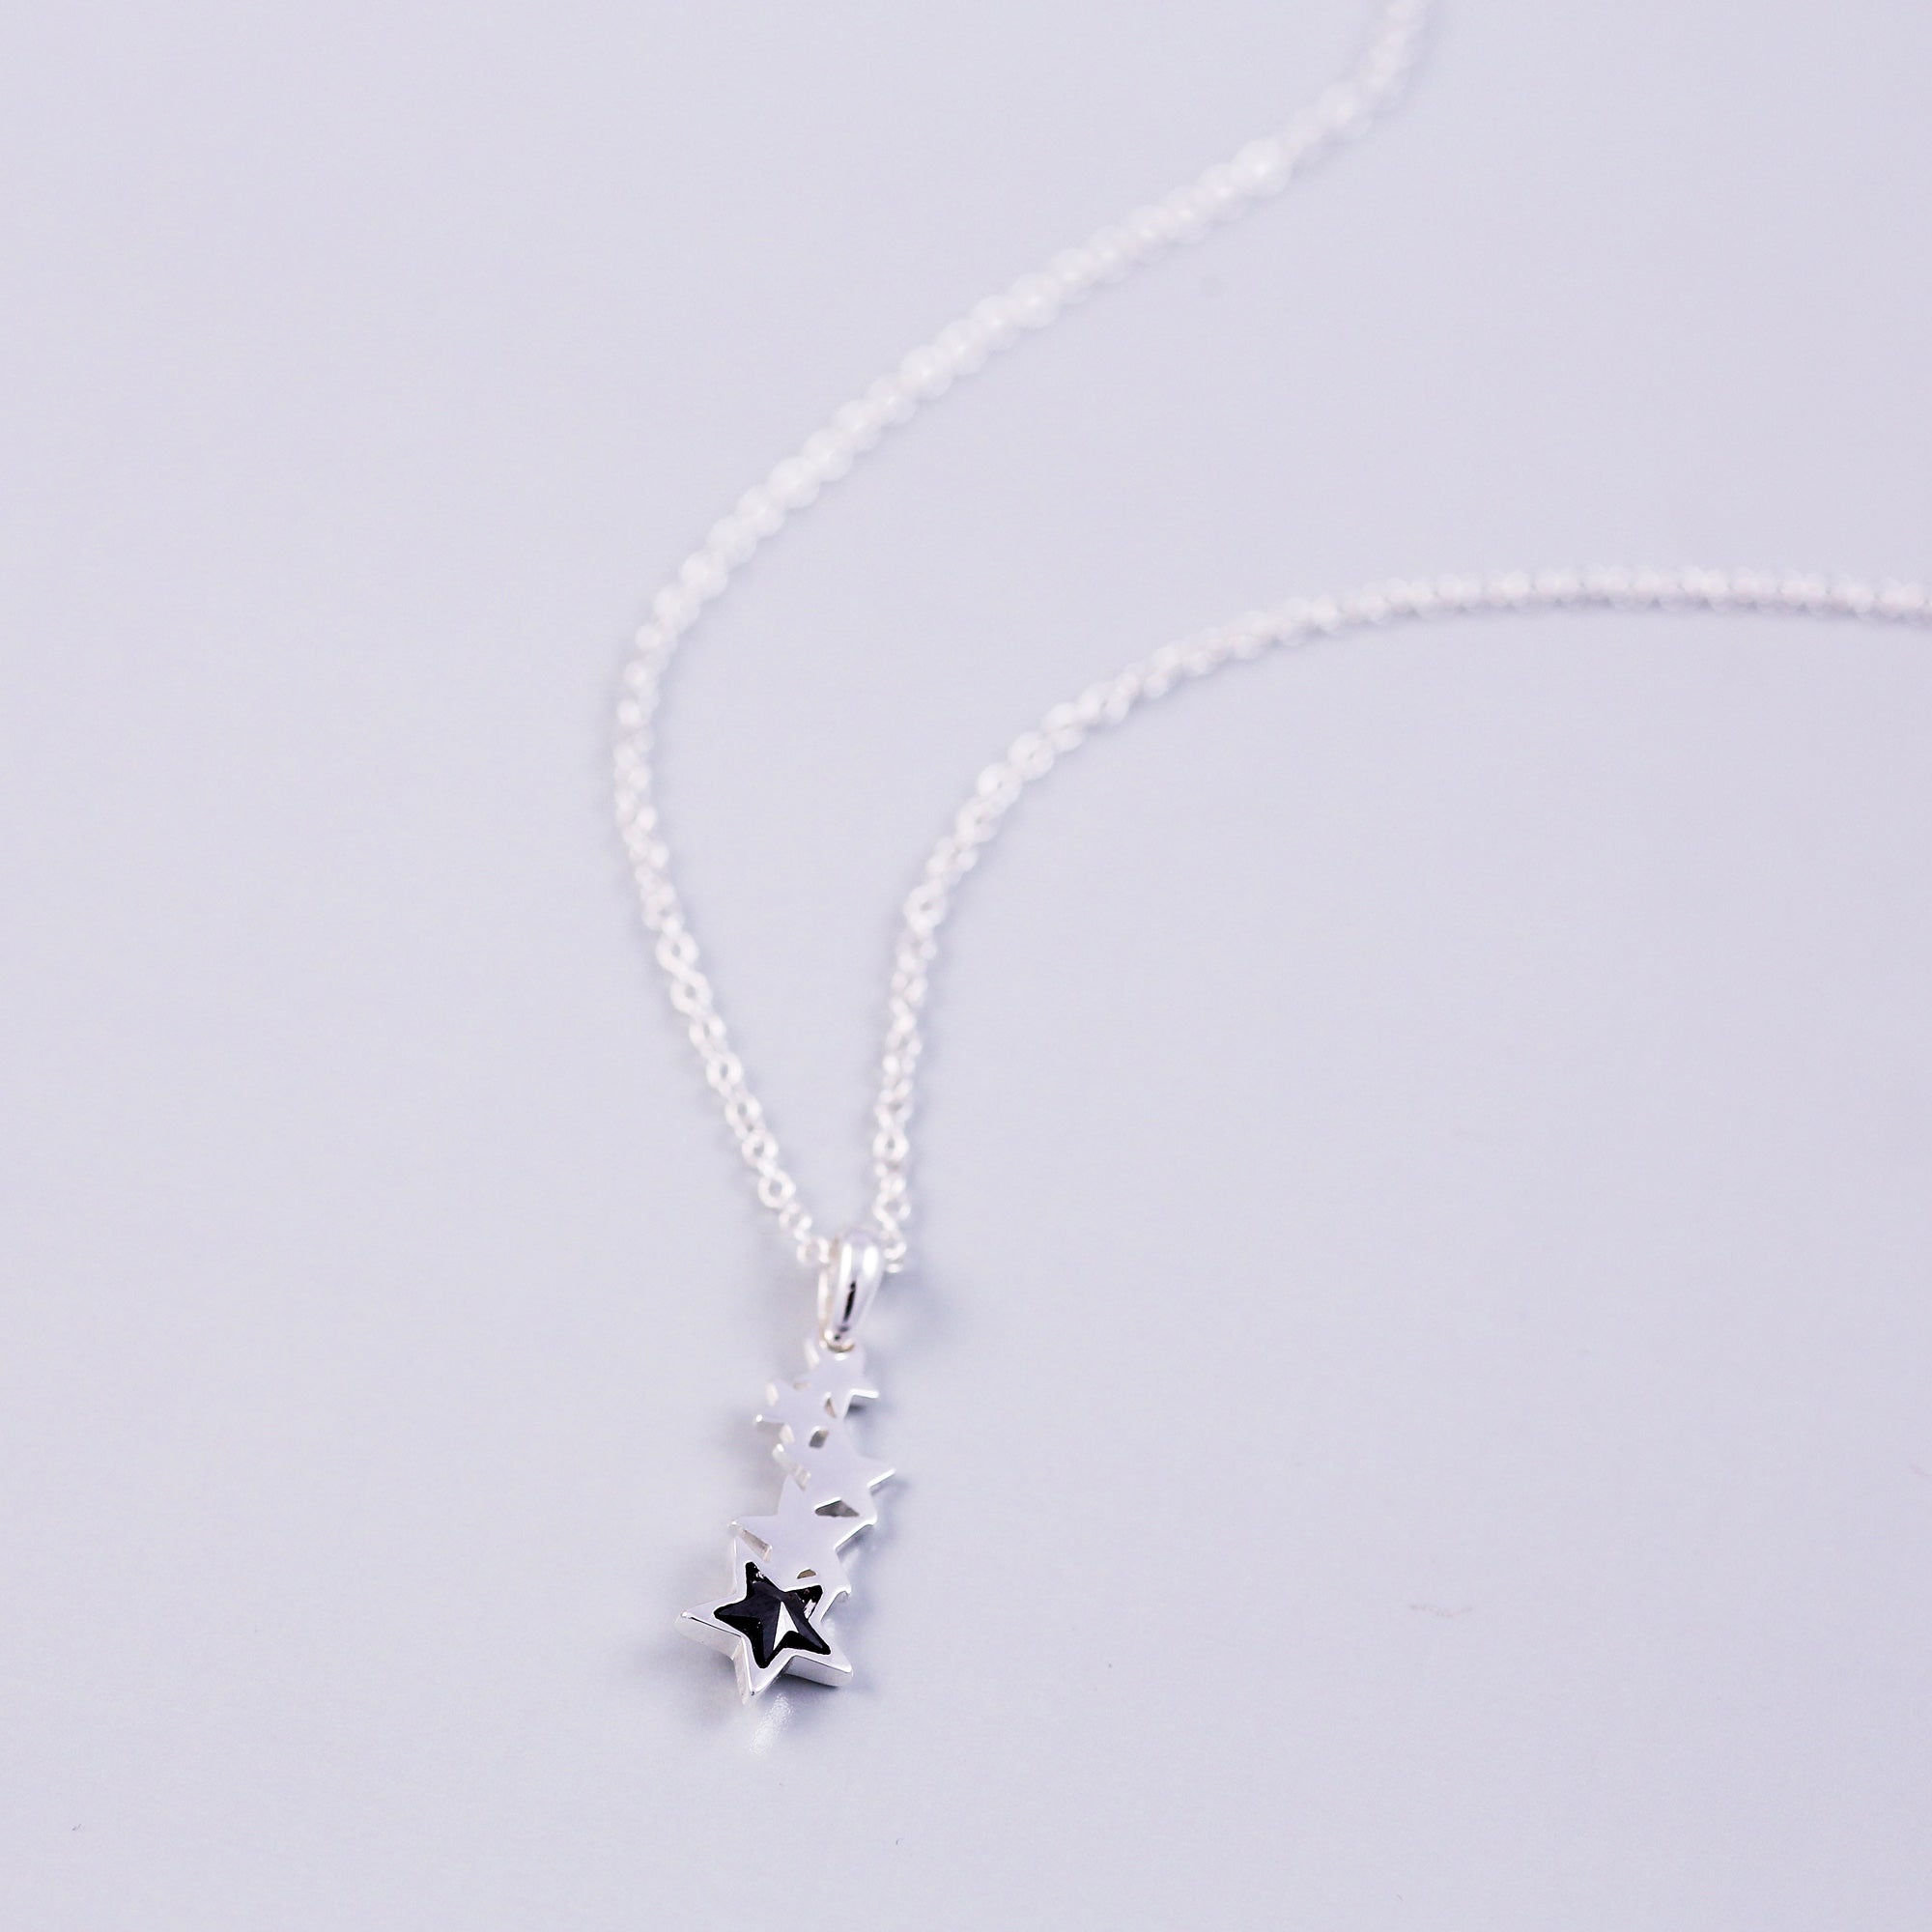 Star Necklace | Shooting Star Pendant | Silver and purple Necklace